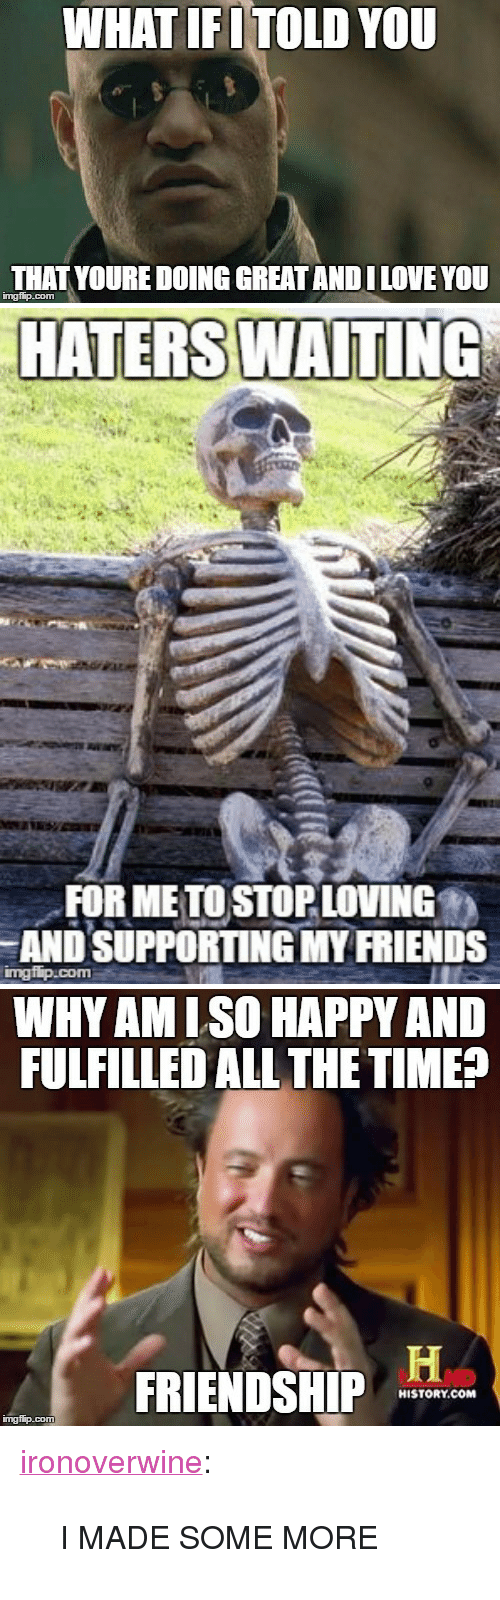 """lso: WHAT IFITOLD YOU  THAT YOURE DOING GREAT ANDI LOVE YOU  imgfip.com   HATERS WAITING  FOR ME TO STOP LOVING  AND SUPPORTING MY FRIENDS   WHYAM LSO HAPPY AND  FULFILLED ALL THE TIMEP  FRIENDSHIP  HISTORY.COM  ingflip.com <p><a href=""""http://ironoverwine.tumblr.com/post/146916828887/i-made-some-more"""" class=""""tumblr_blog"""">ironoverwine</a>:</p>  <blockquote><p>I MADE SOME MORE</p></blockquote>"""